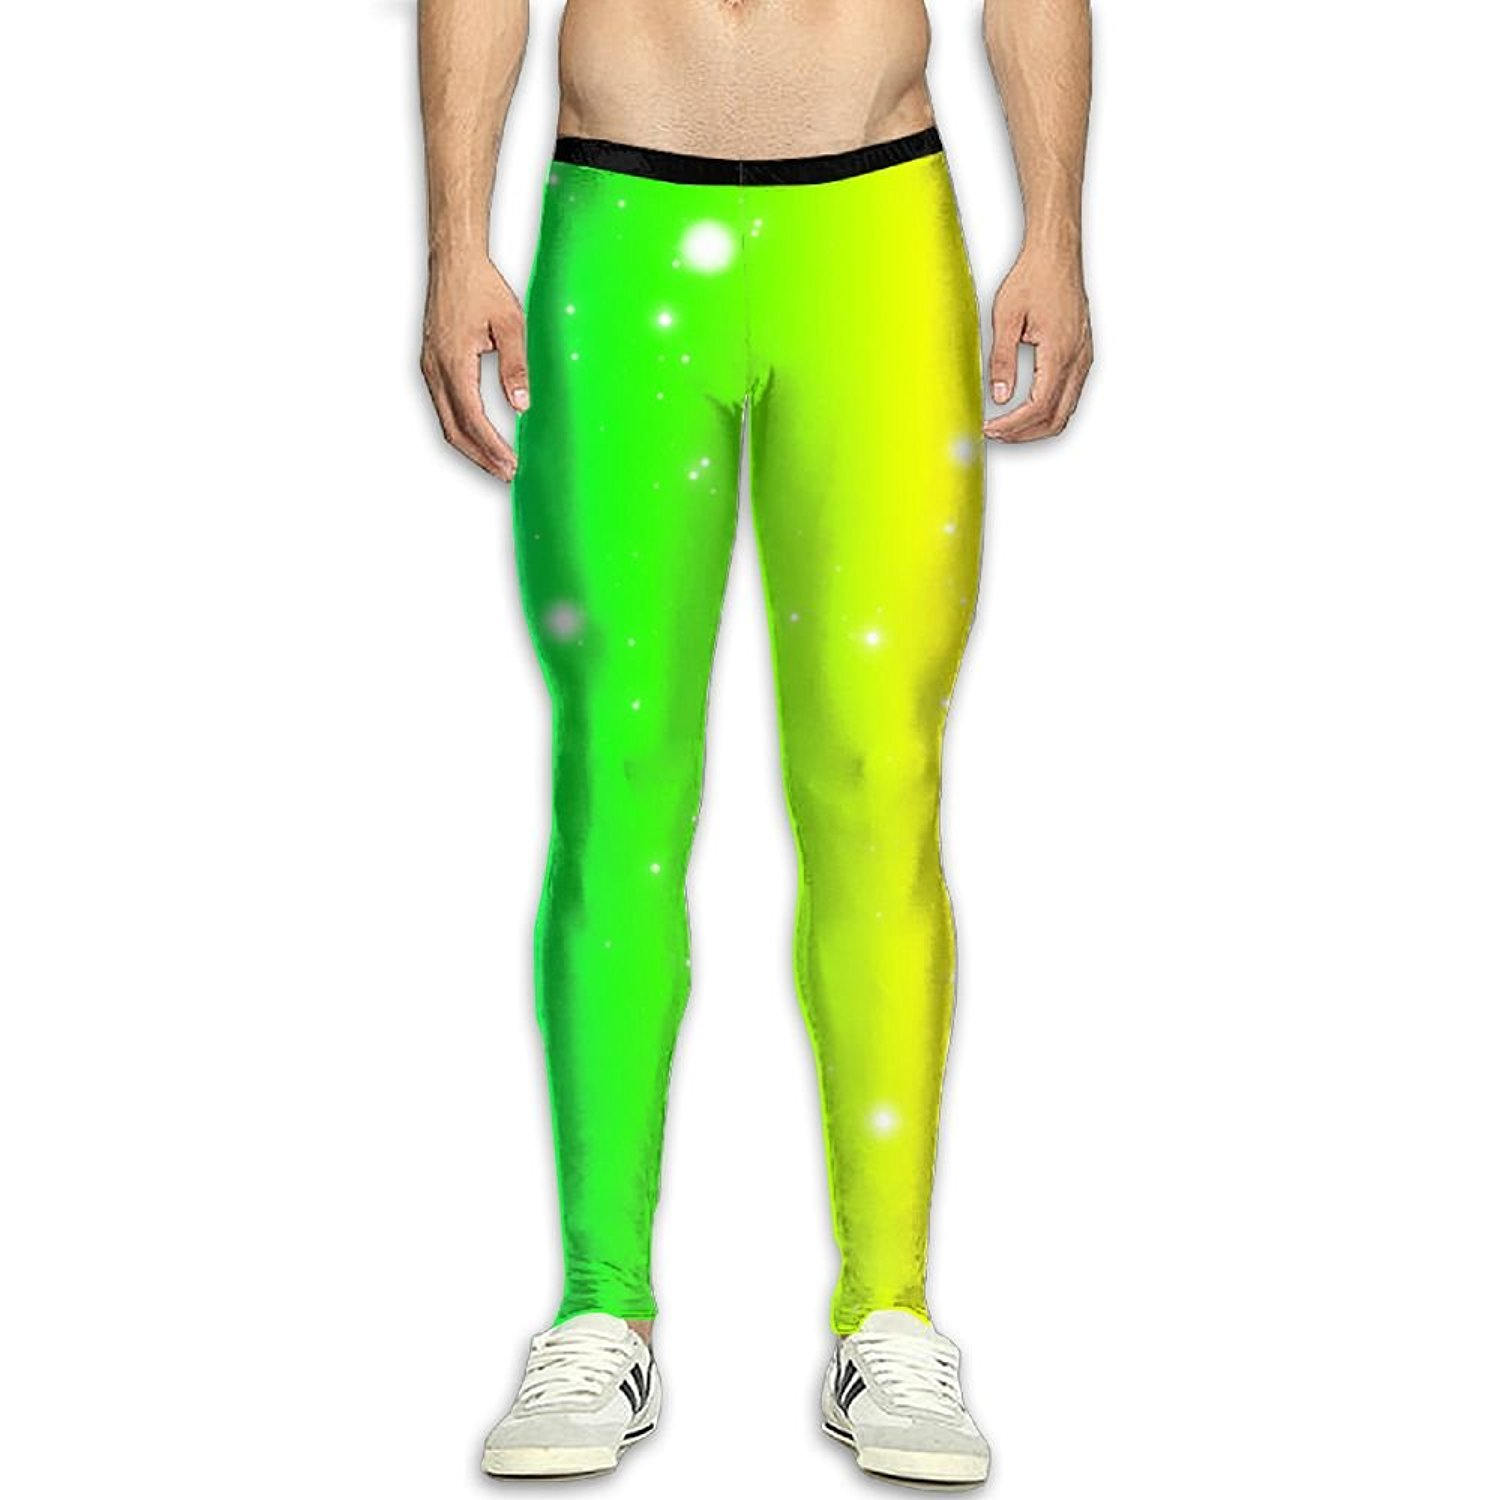 09208b48936aa2 Get Quotations · Virgo Rainbow colorful Skins Compression Pants/Running  Tights Baselayer Mens Winter Pants Male Tall